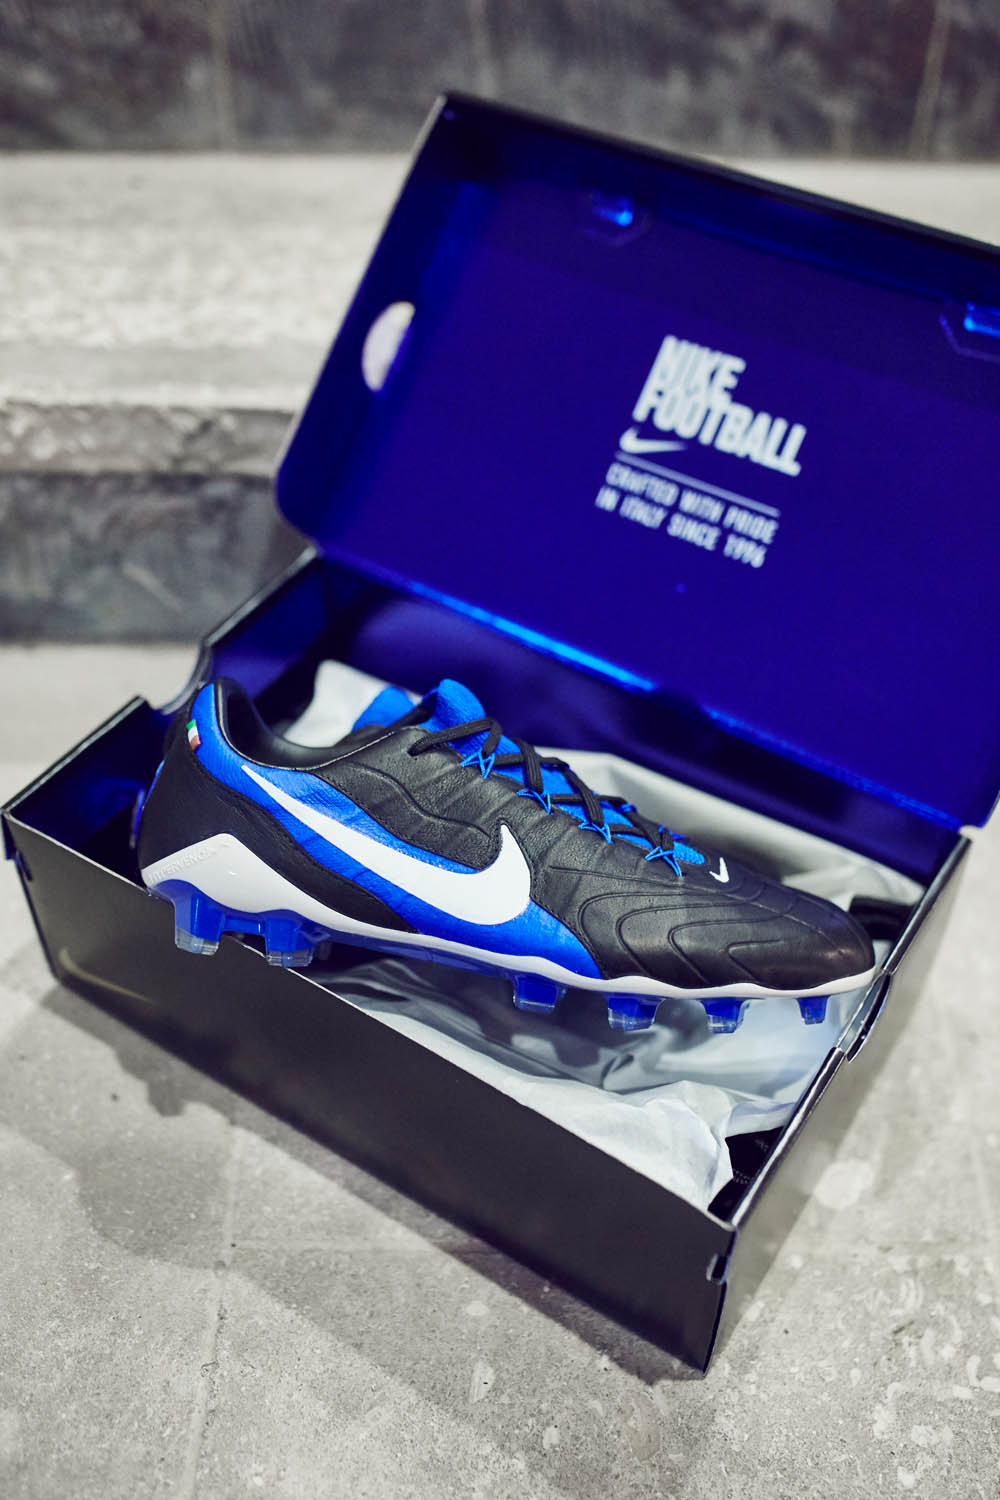 website for discount super specials online here Nike Limited Edition Hypervenom GX Football Boots - SoccerBible